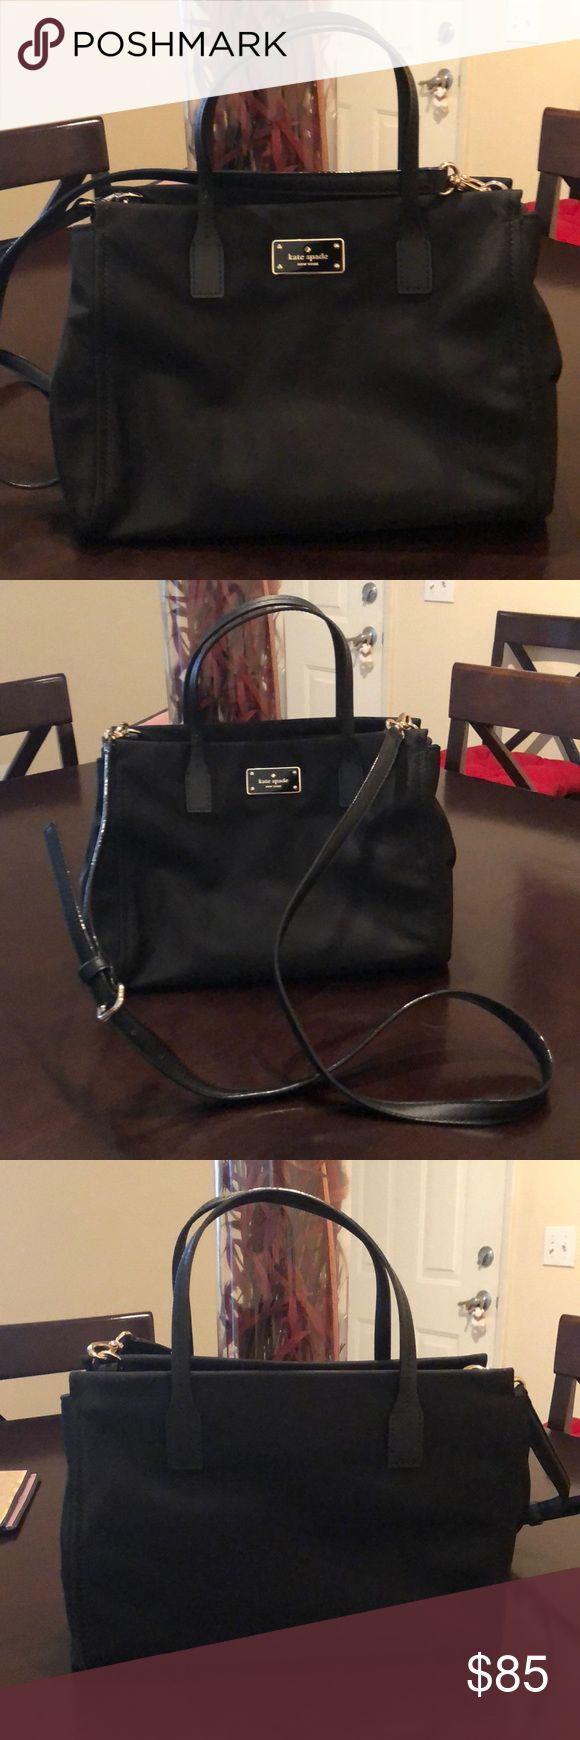 Kate Spade Black fabric bag Kate spade black bag 8 in tall x 12 in wide, with extra strap to make it a crossbody. Waterproof fabric. Check the matching wallet in my closet!! kate spade Bags Mini Bags